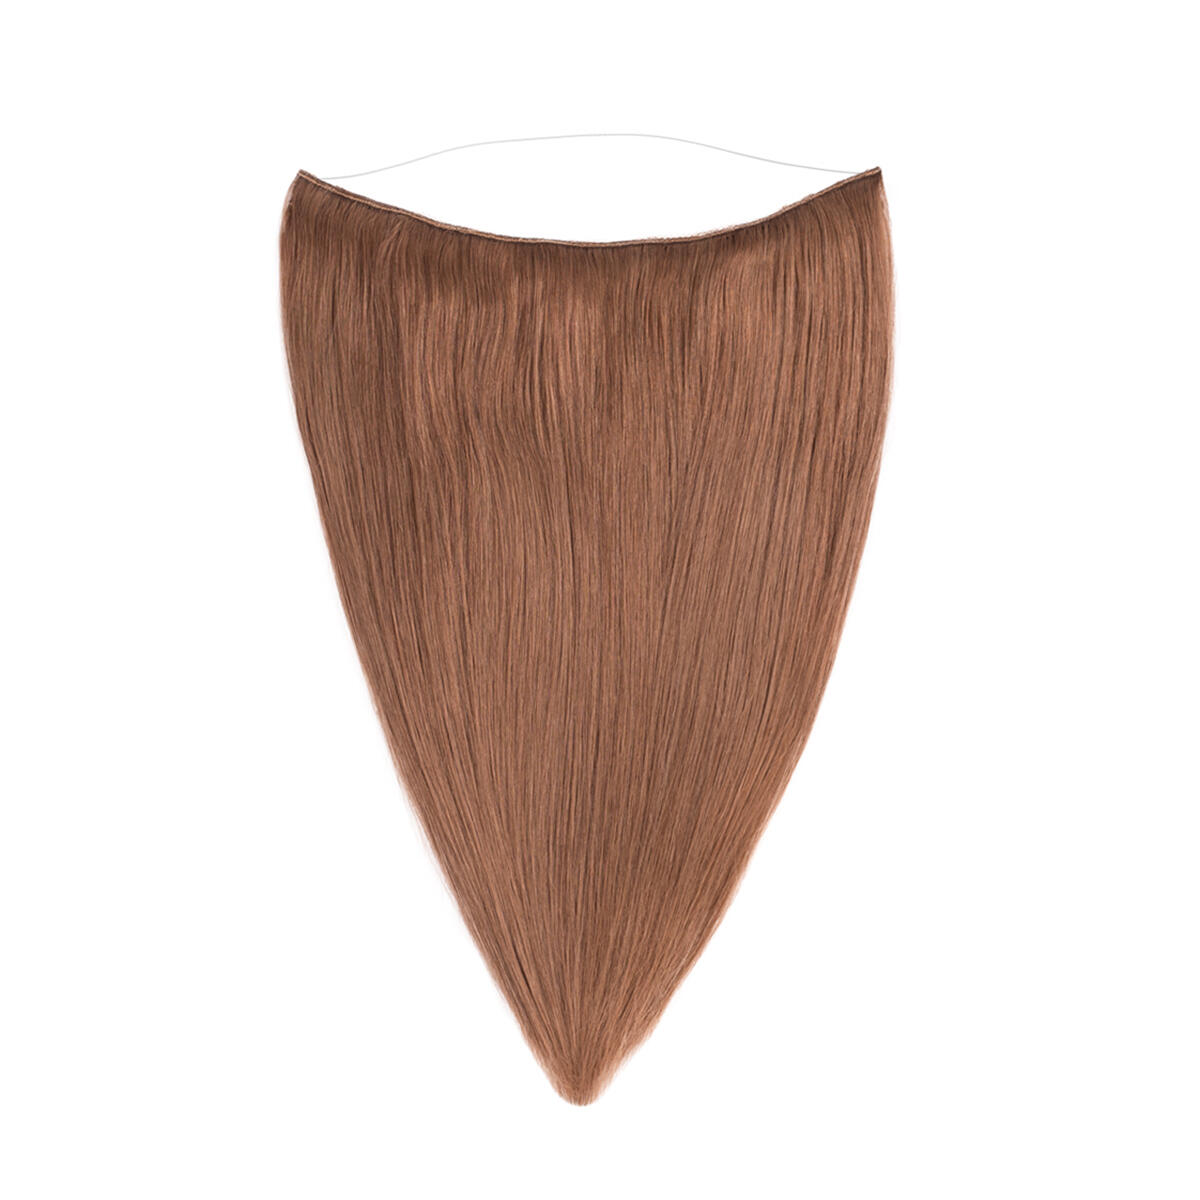 Hairband Original 5.1 Medium Ash Brown 45 cm